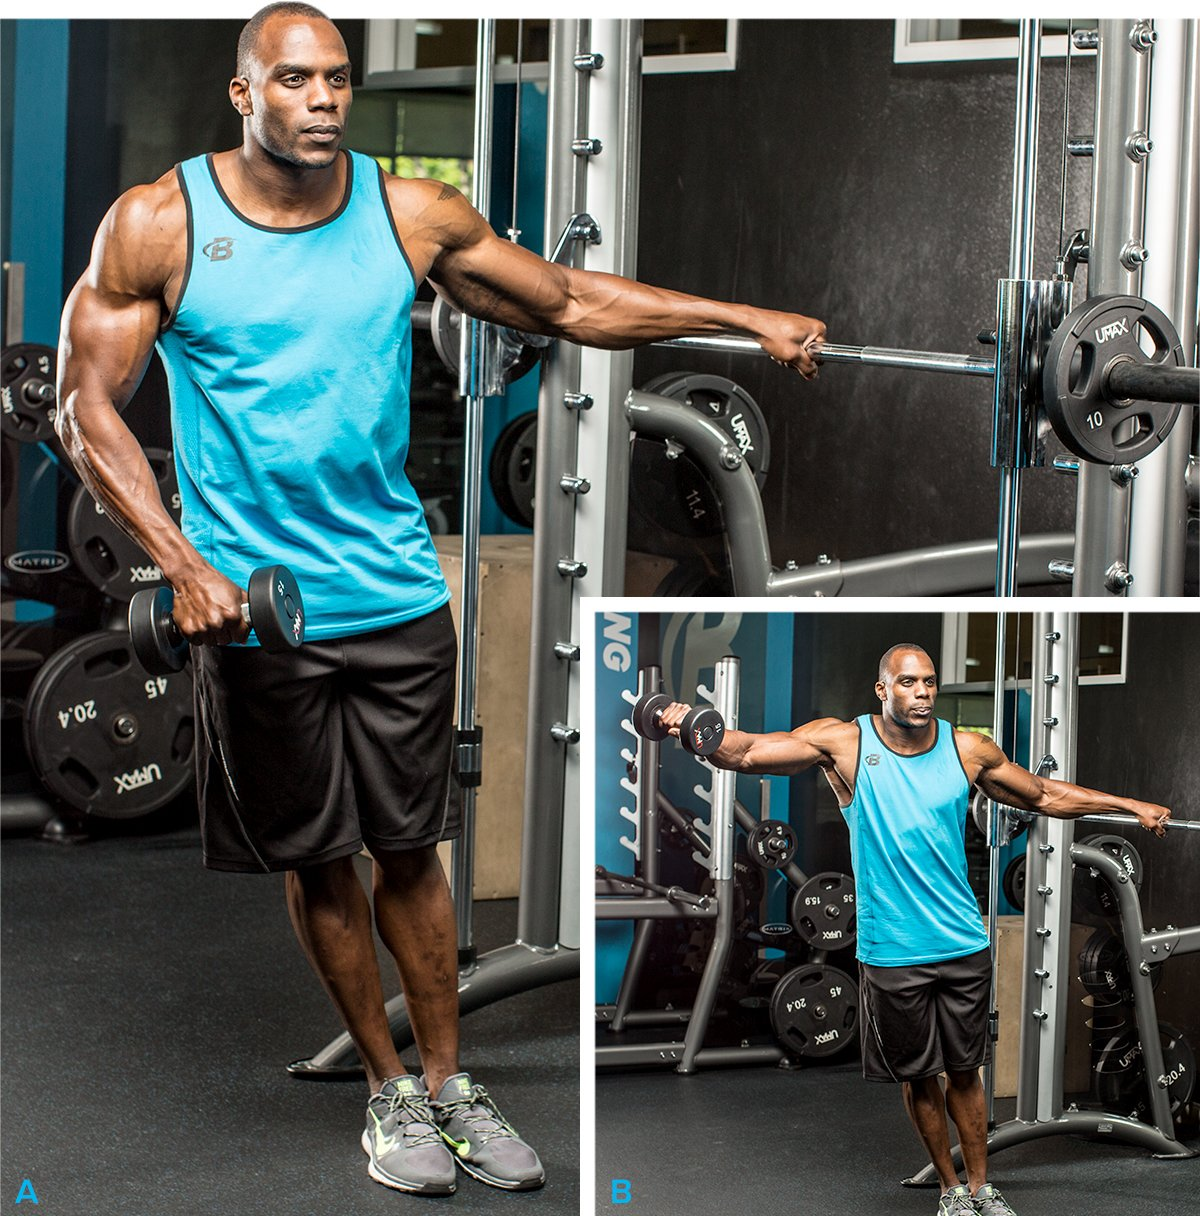 Best Workout: Shoulder Workouts For Men: The 7 Best Routines For Bigger